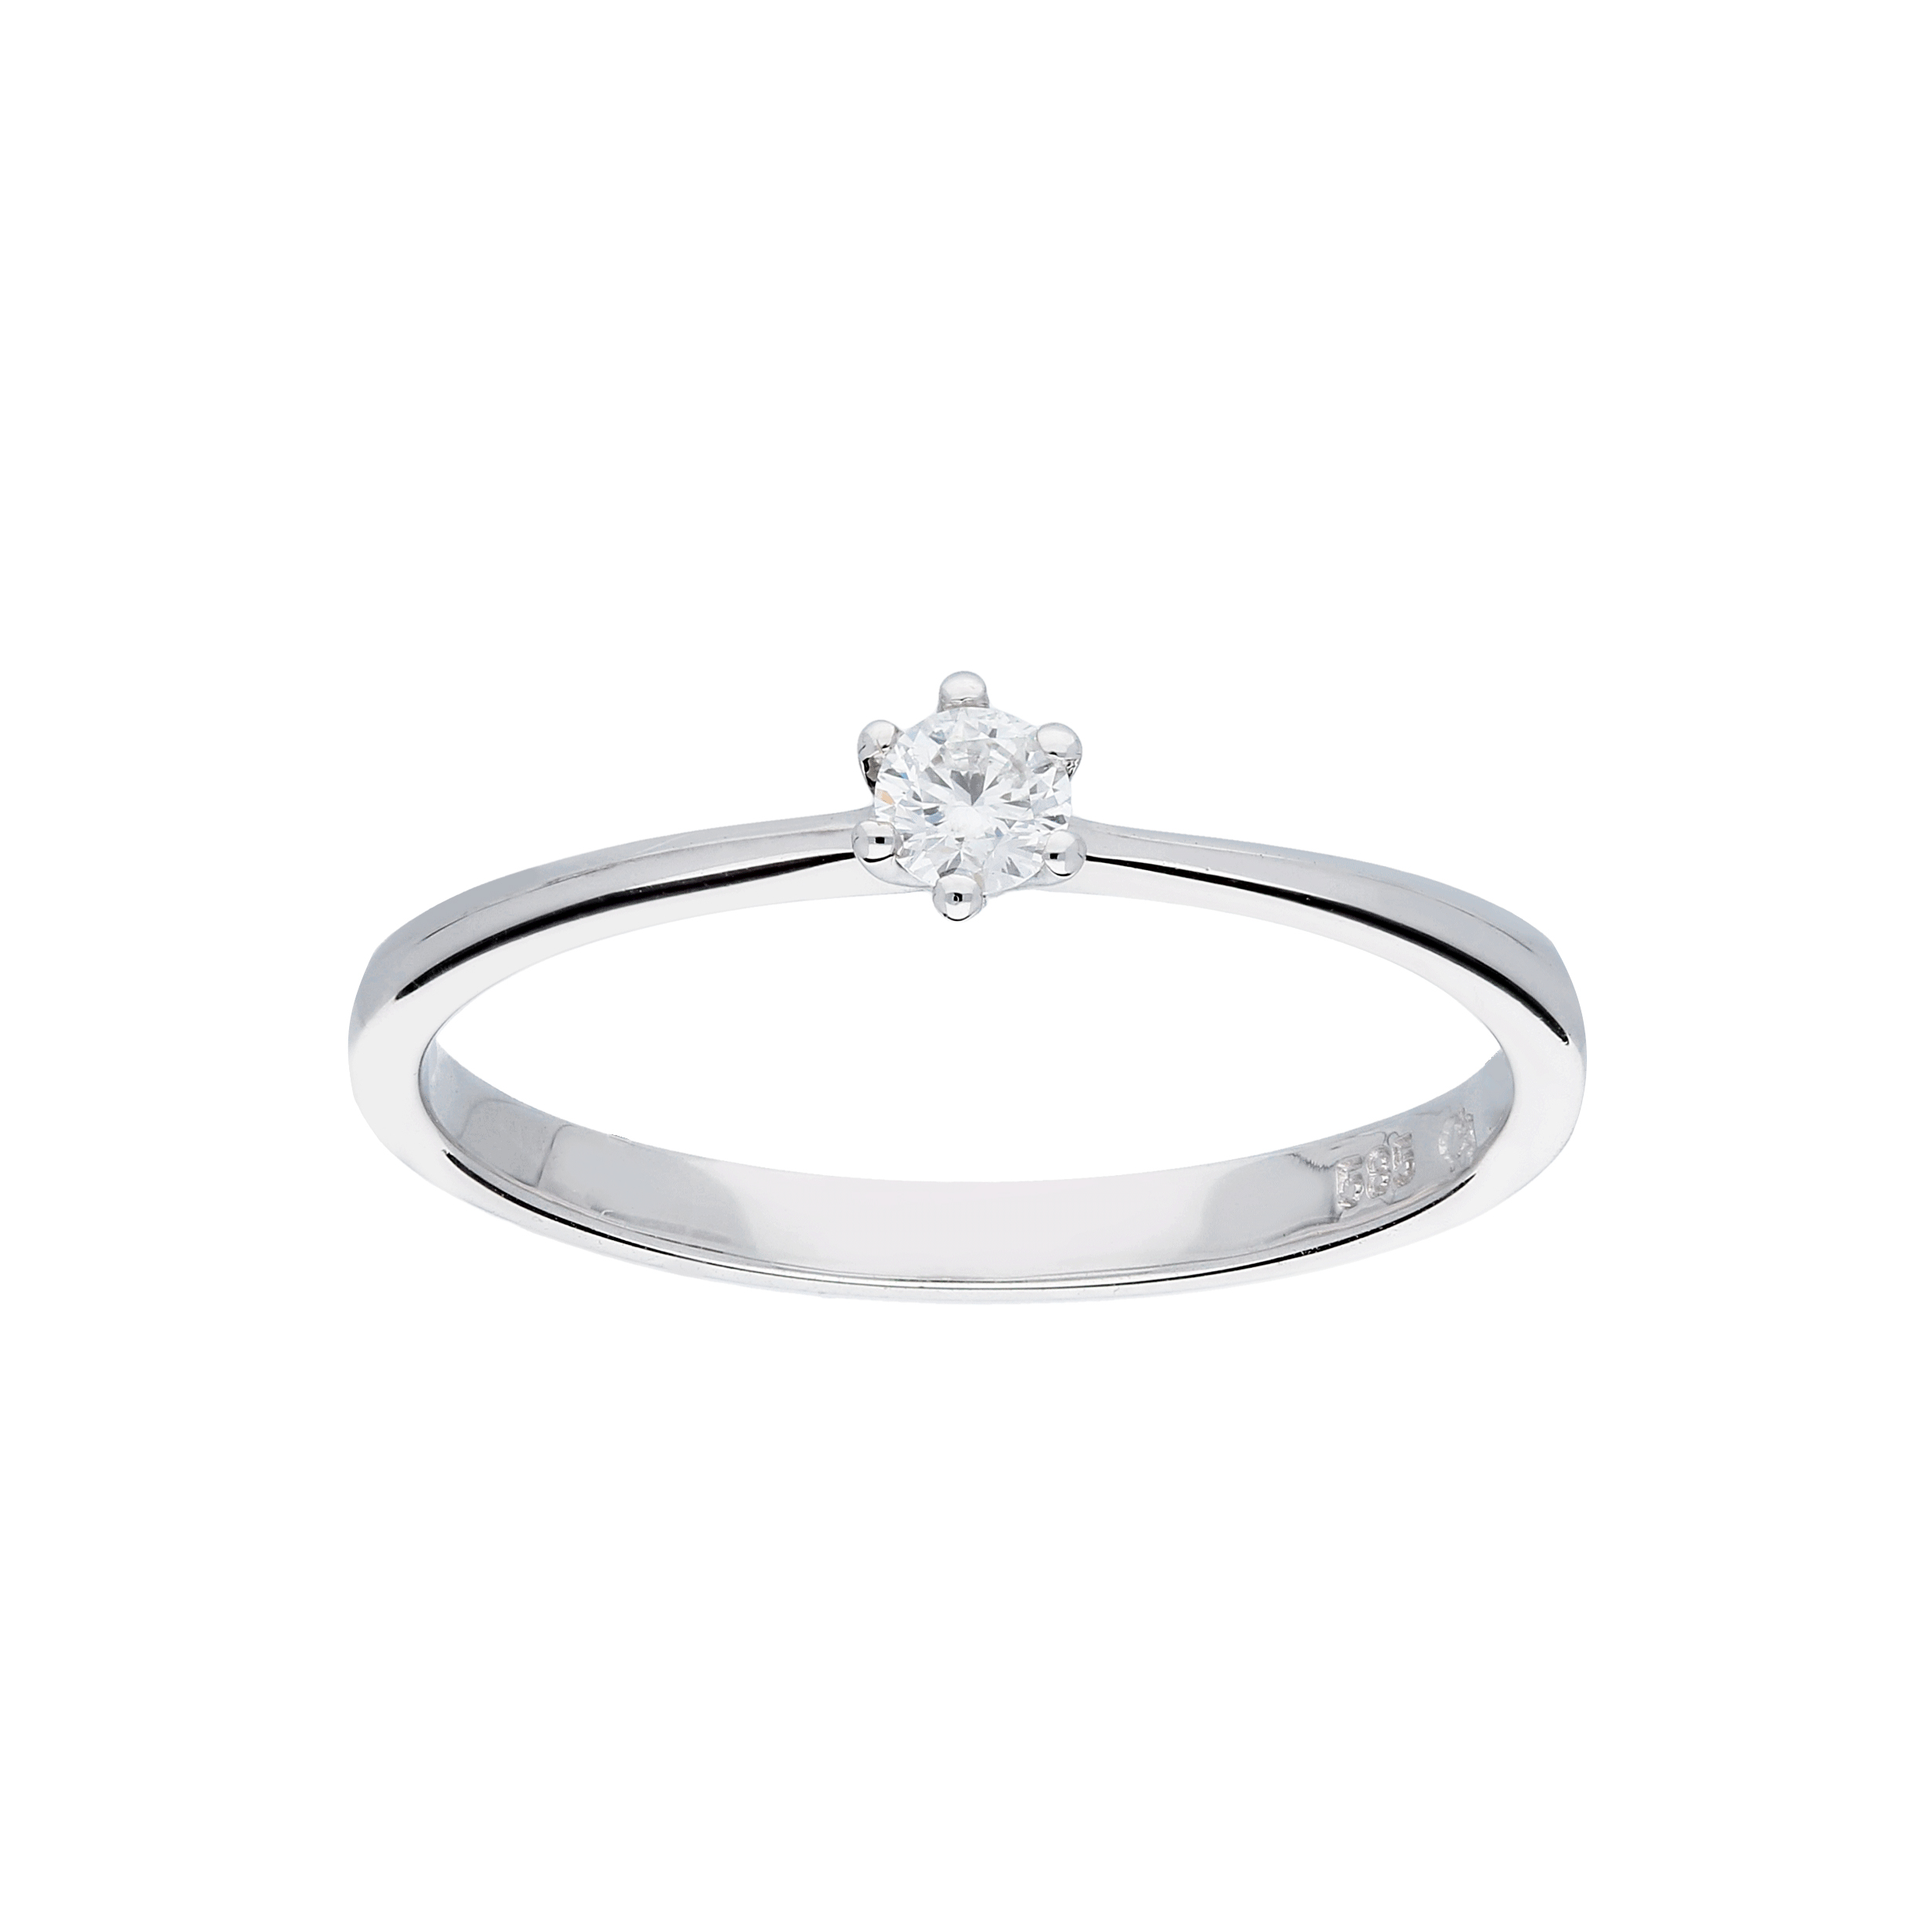 Glow Witgouden Ring Glanzend Diamant 1 0.1ct G si 214.3006.56